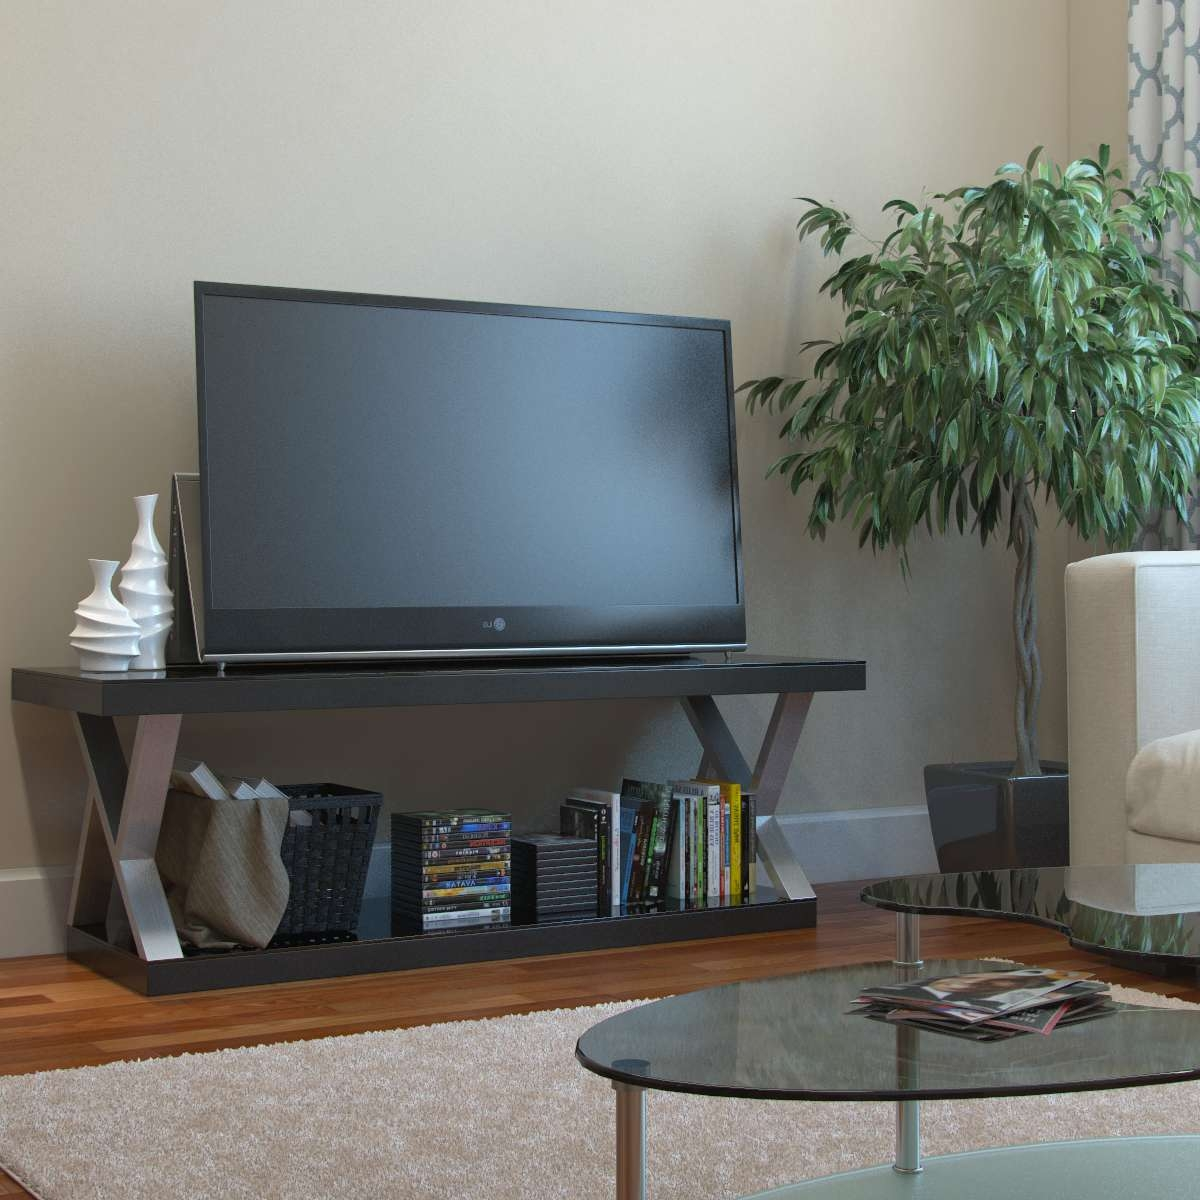 Ryan Rove Hayden Double V Design 60 Inch Modern Tv Stand Pertaining To Modern Tv Stands For 60 Inch Tvs (View 11 of 15)